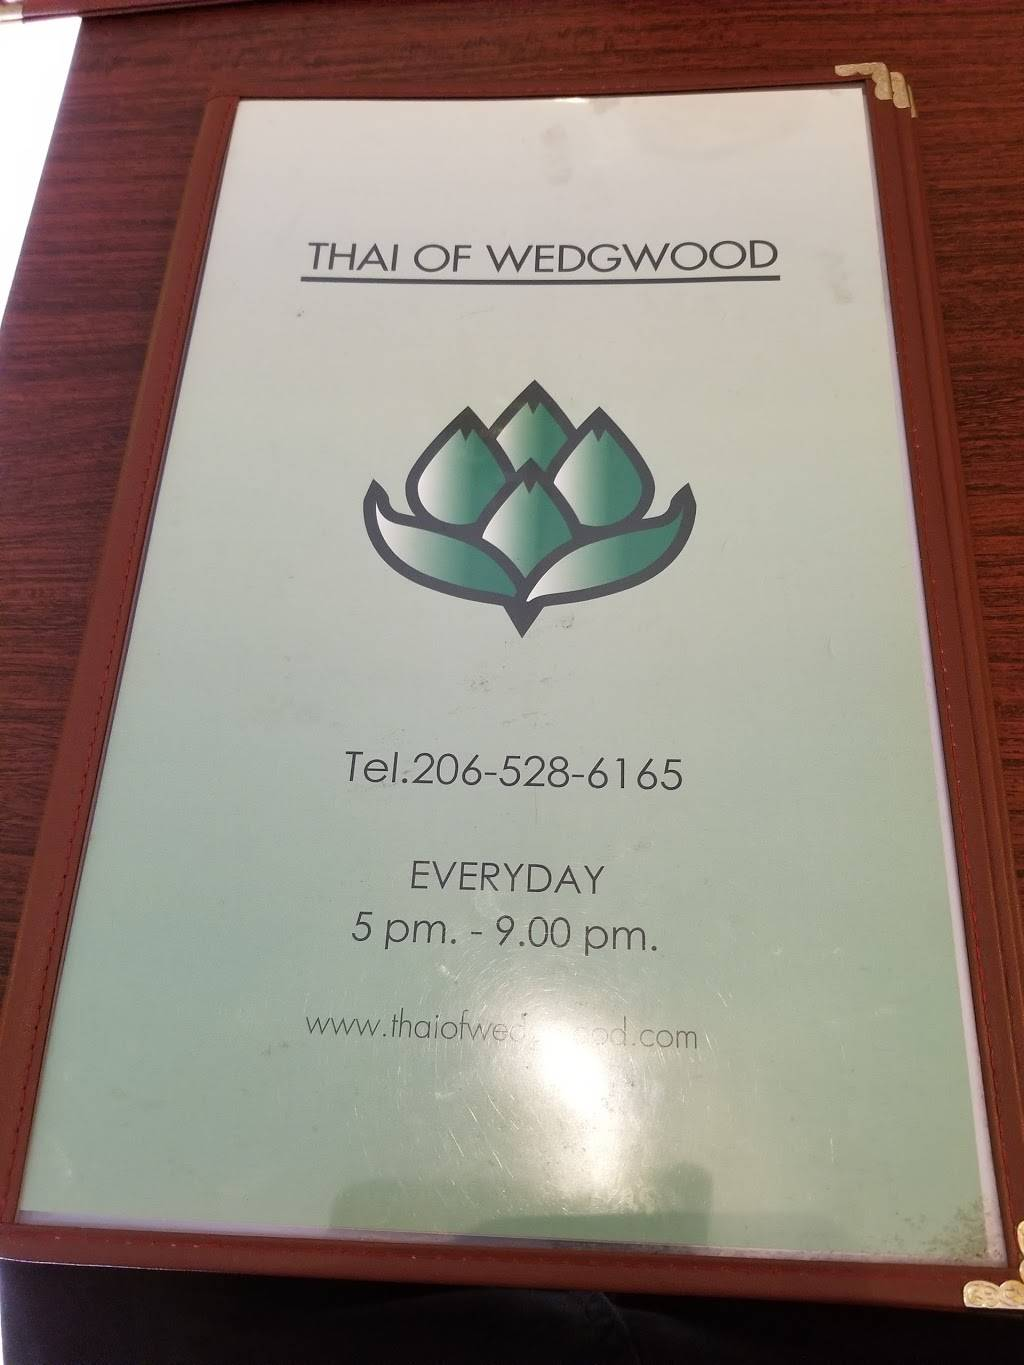 Thai of Wedgwood - restaurant  | Photo 7 of 9 | Address: 7520 35th Ave NE #3, Seattle, WA 98115, USA | Phone: (206) 528-6165